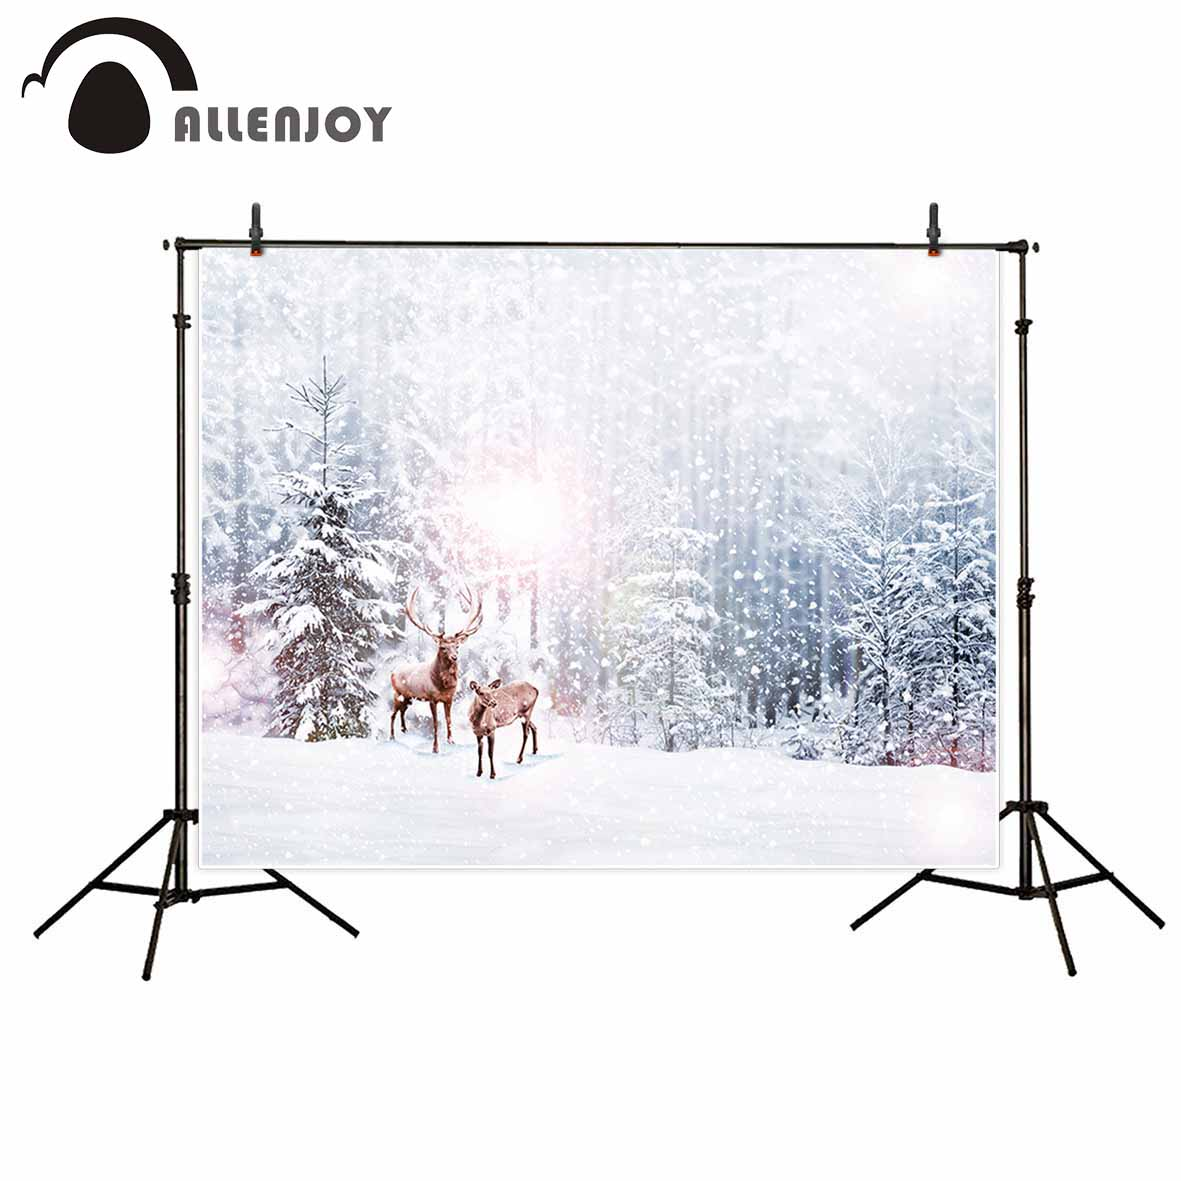 Allenjoy Winter background forest pine elk snow photography backdrops christmas decorations new backdrops photo studio стабилизатор вязкости 0 3л liqui moly visco stabil 1996